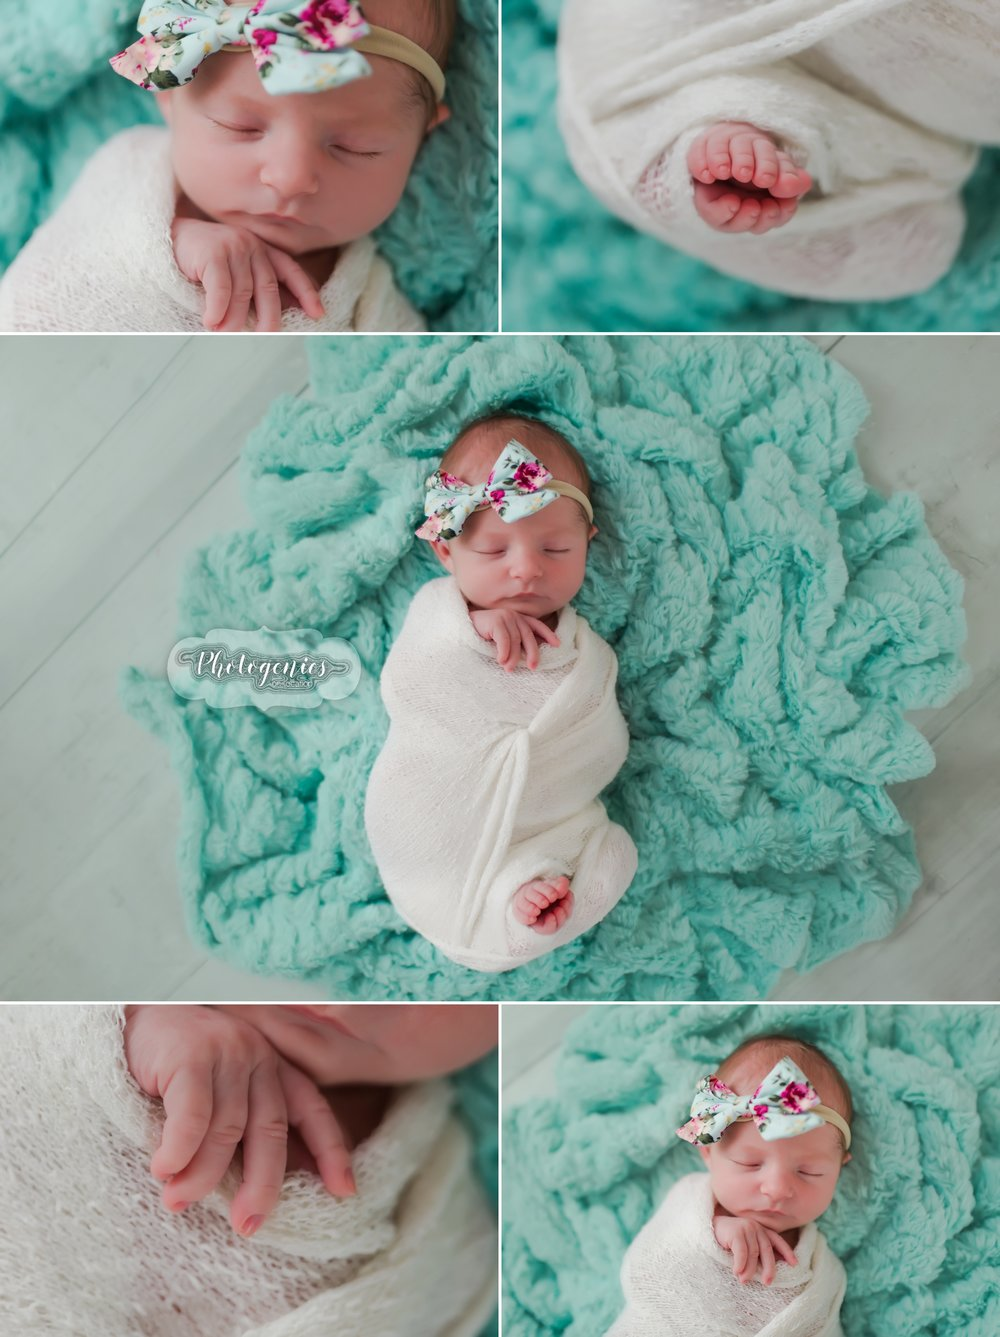 newborn_girl_photography_unique_poses_parents_studio_session_florals_wraps 1